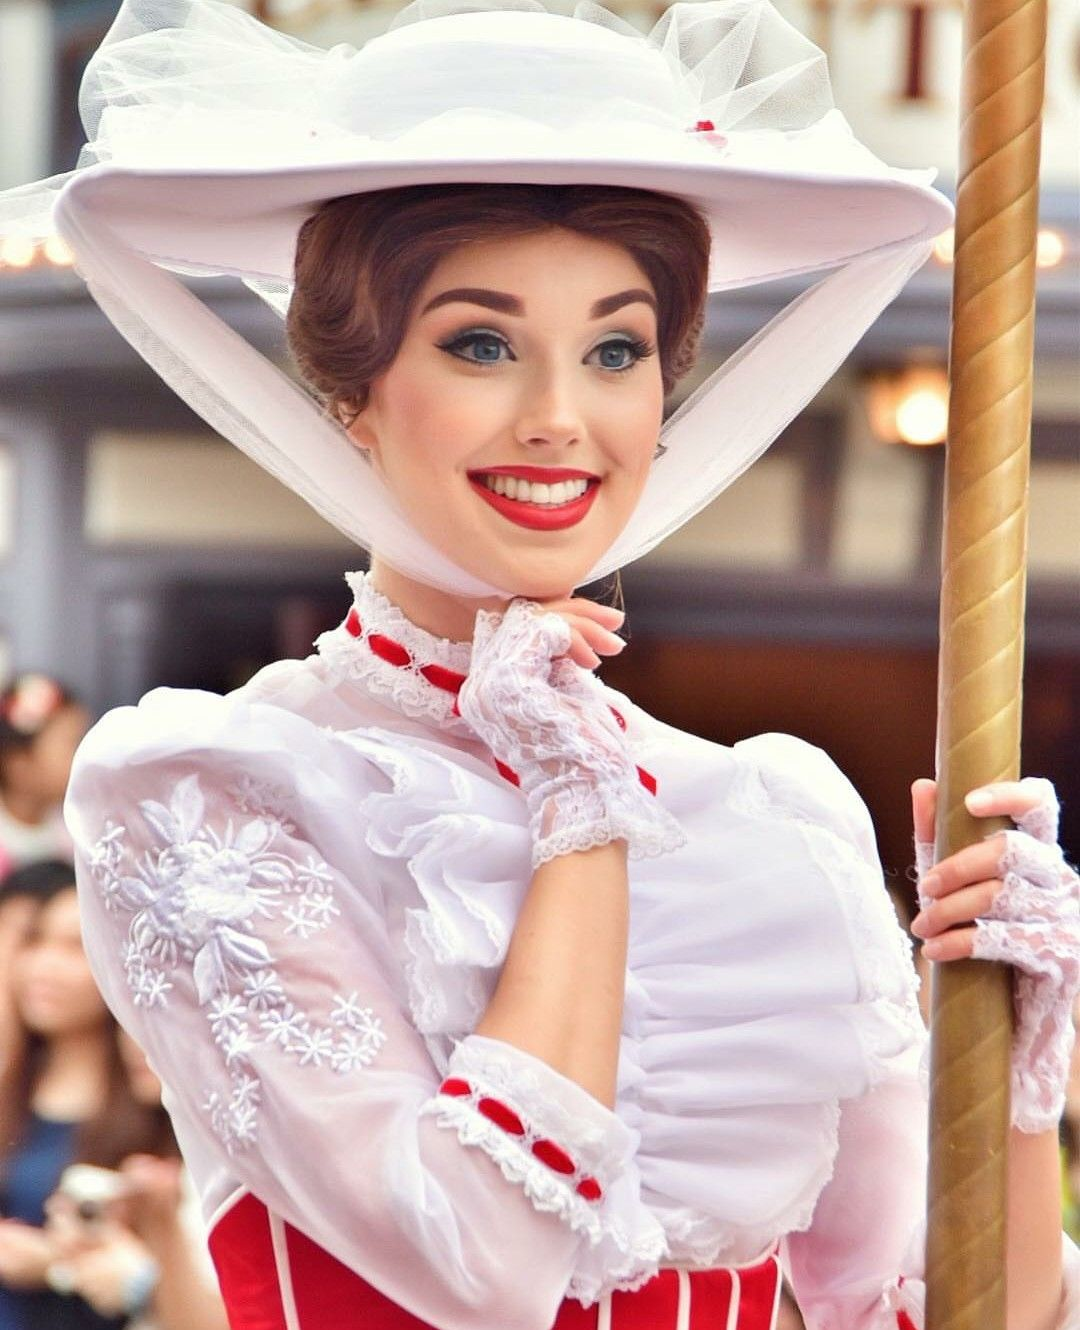 Her Makeup Is So Pretty Mary Poppins Face Character At Disney Disney Cosplay Disney Face Characters Disney Costumes